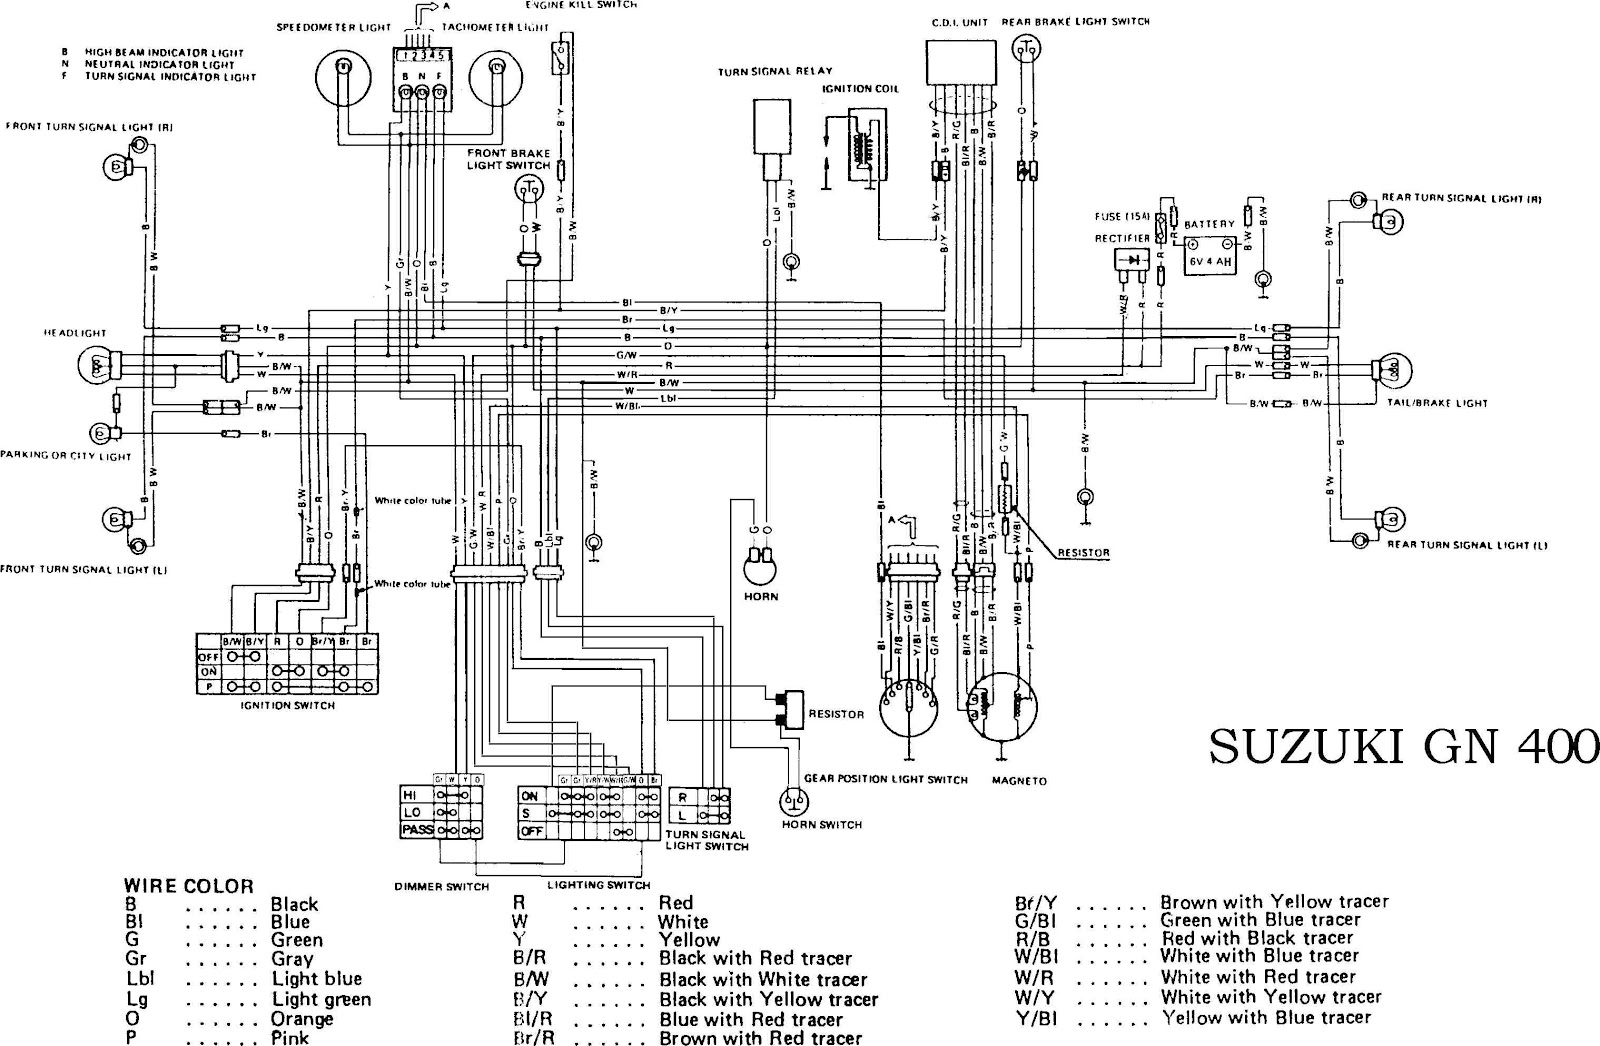 94 integra turn signal wiring diagram 1995 acura integra turn signal wiring diagram | wiring library 54 chevy turn signal wiring diagram #13